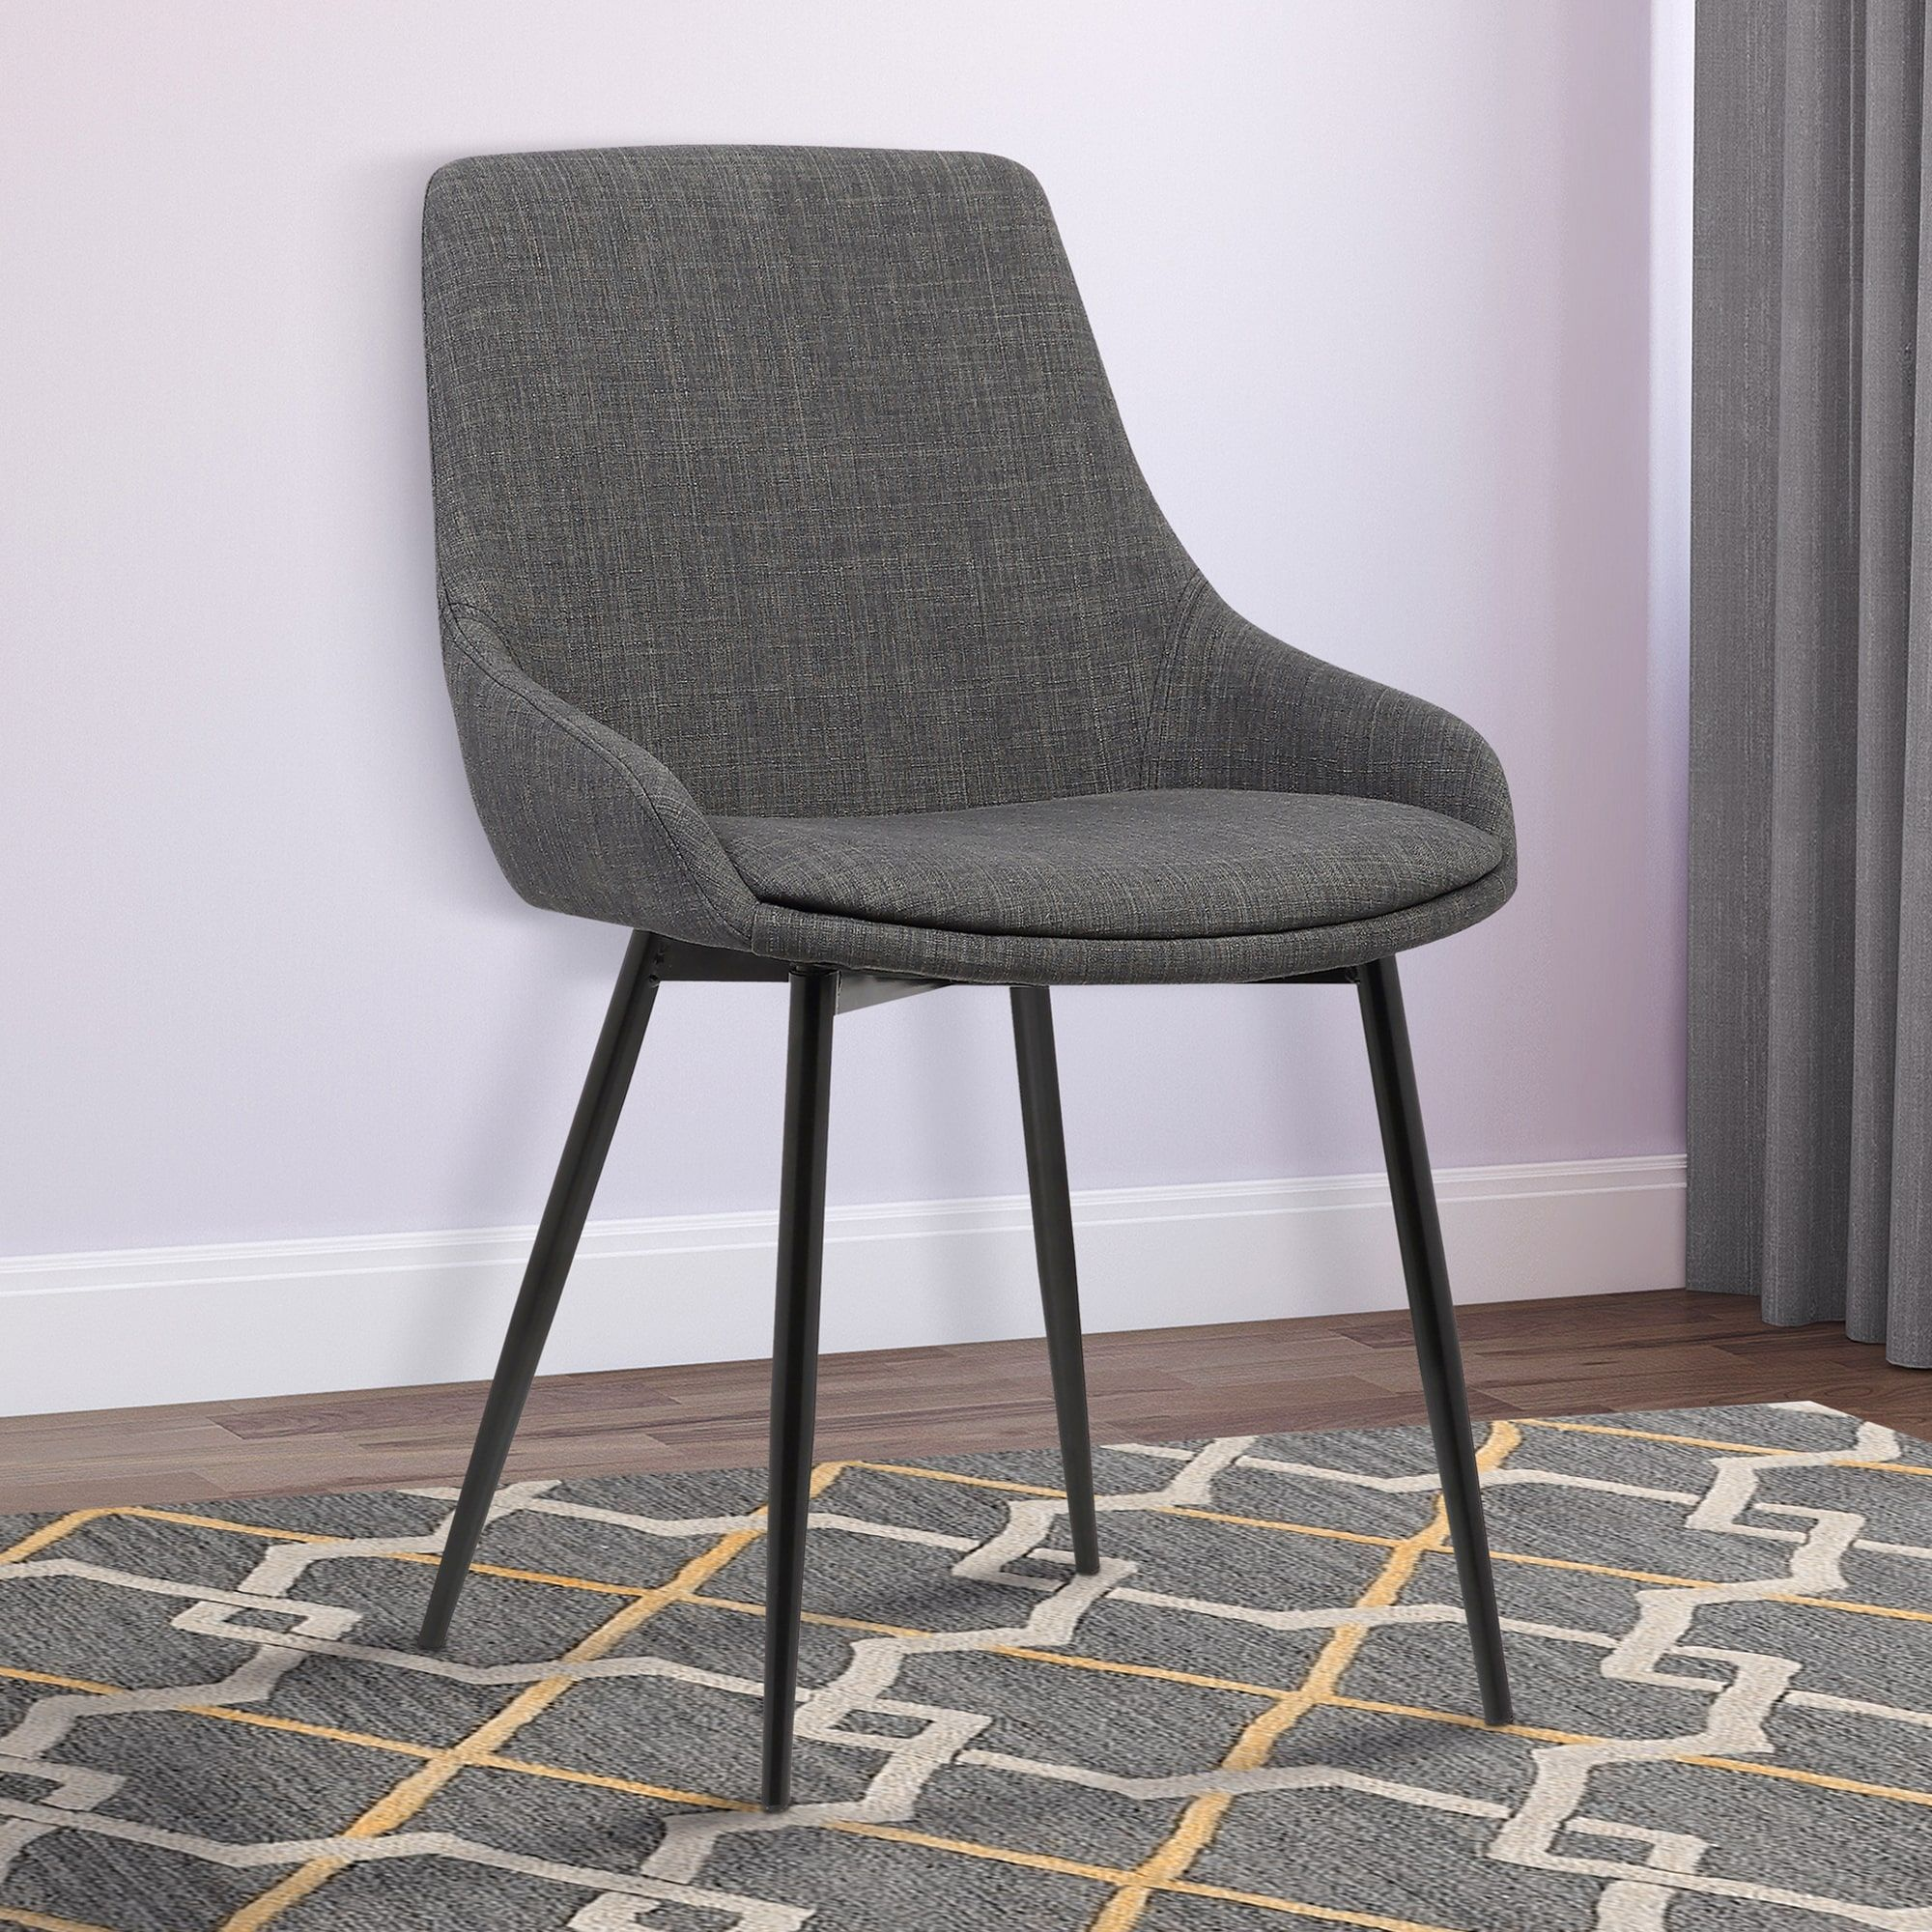 Armen Living Mia Gray Fabric Dining Chair With Black Powder Coated Metal Legs Grey